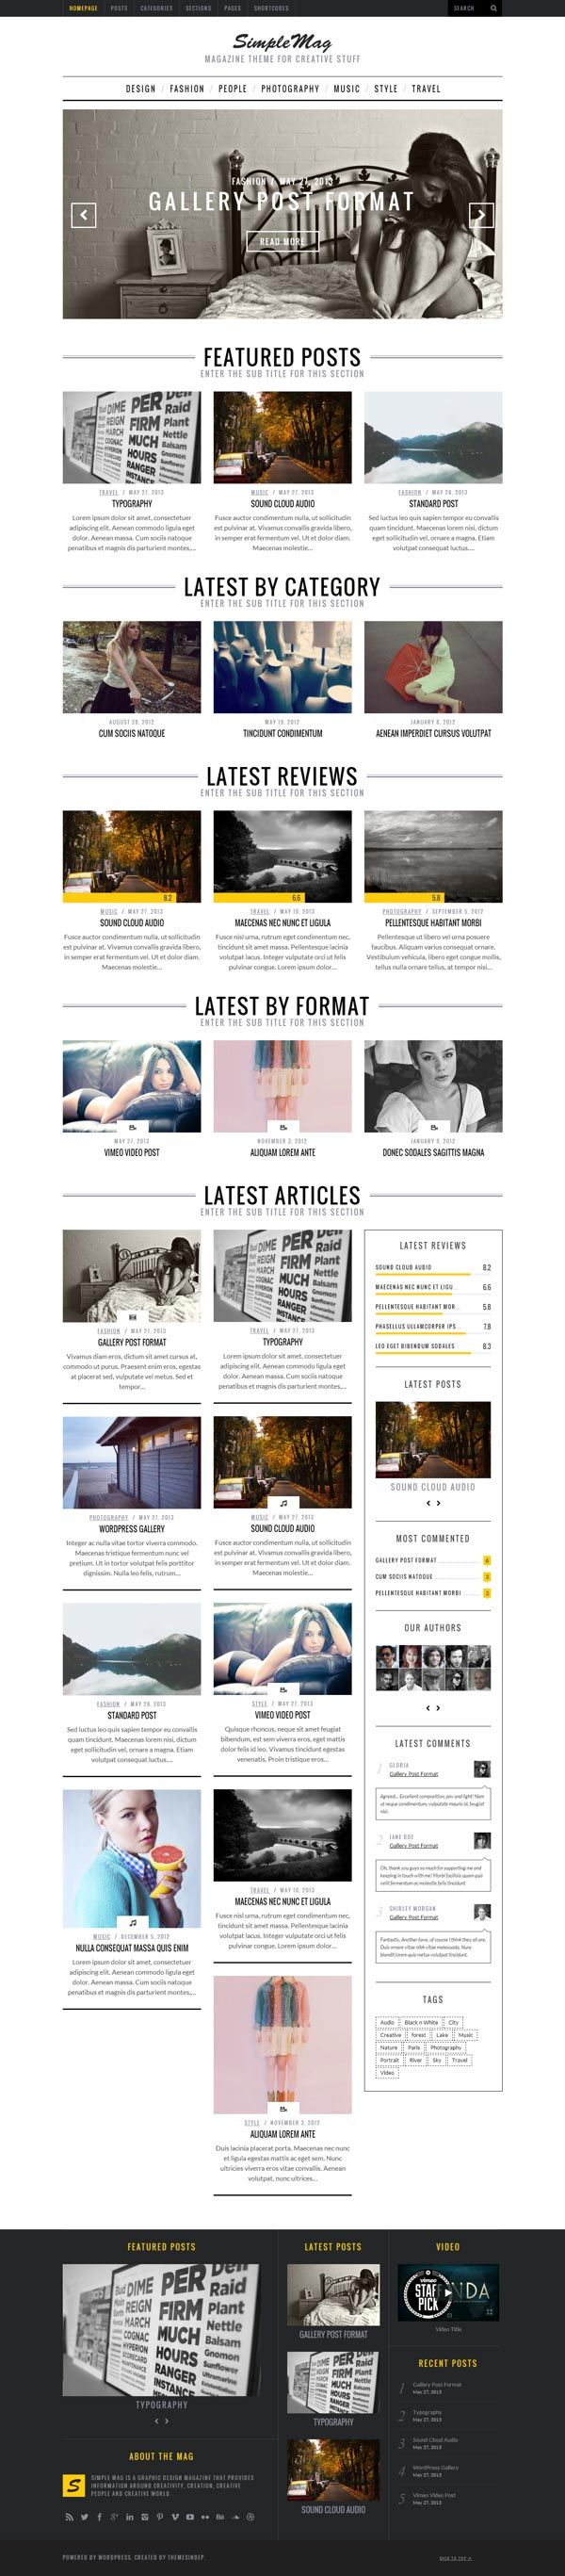 Simple Mag - Blog Wordpress Theme for Online Magazines